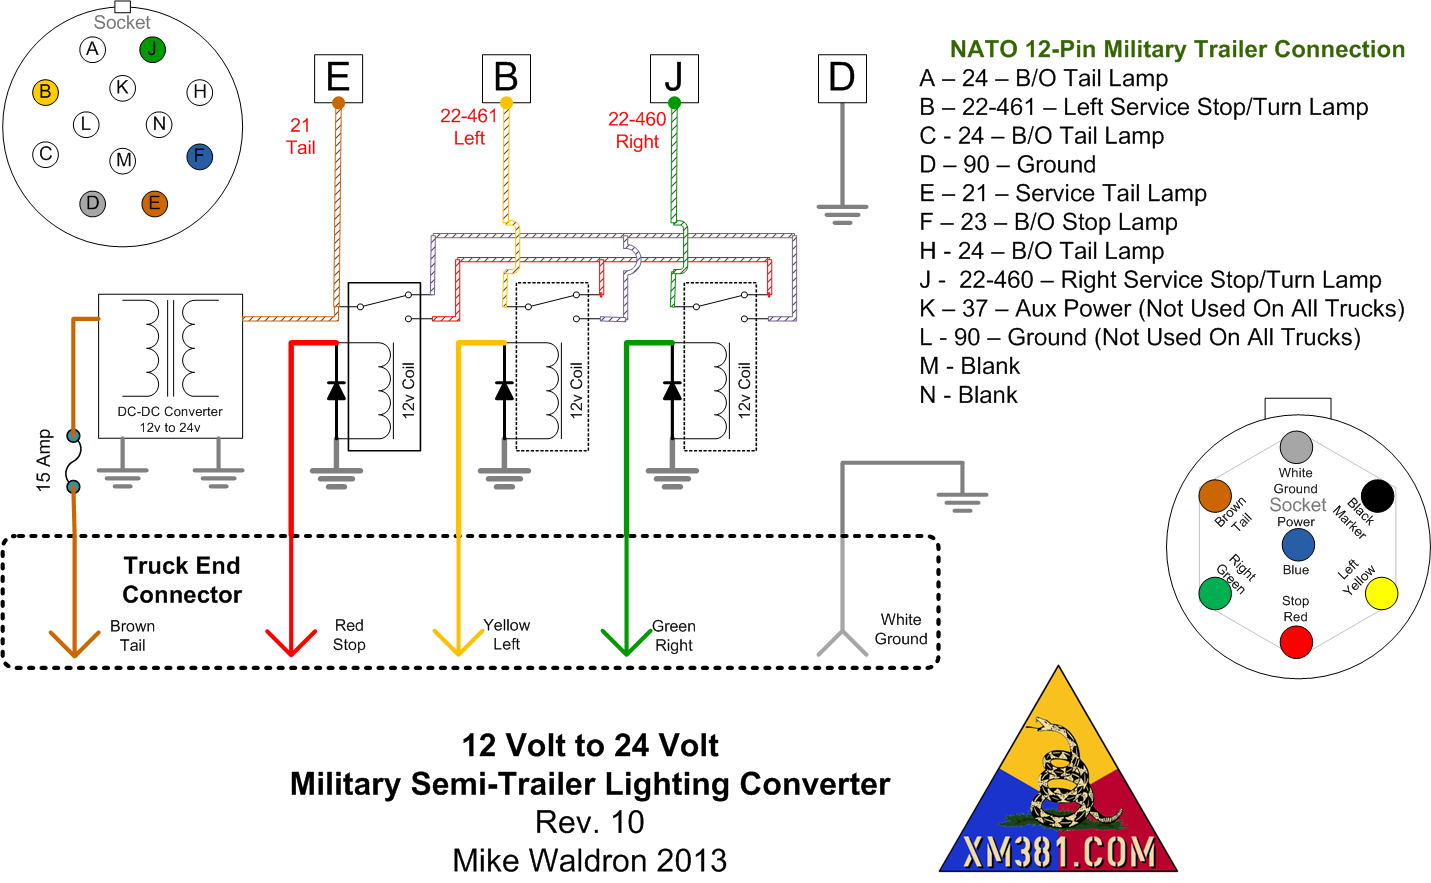 xm381 12 volt civllian truck to 24 volt military trailer lighting  military trailer's nato socket